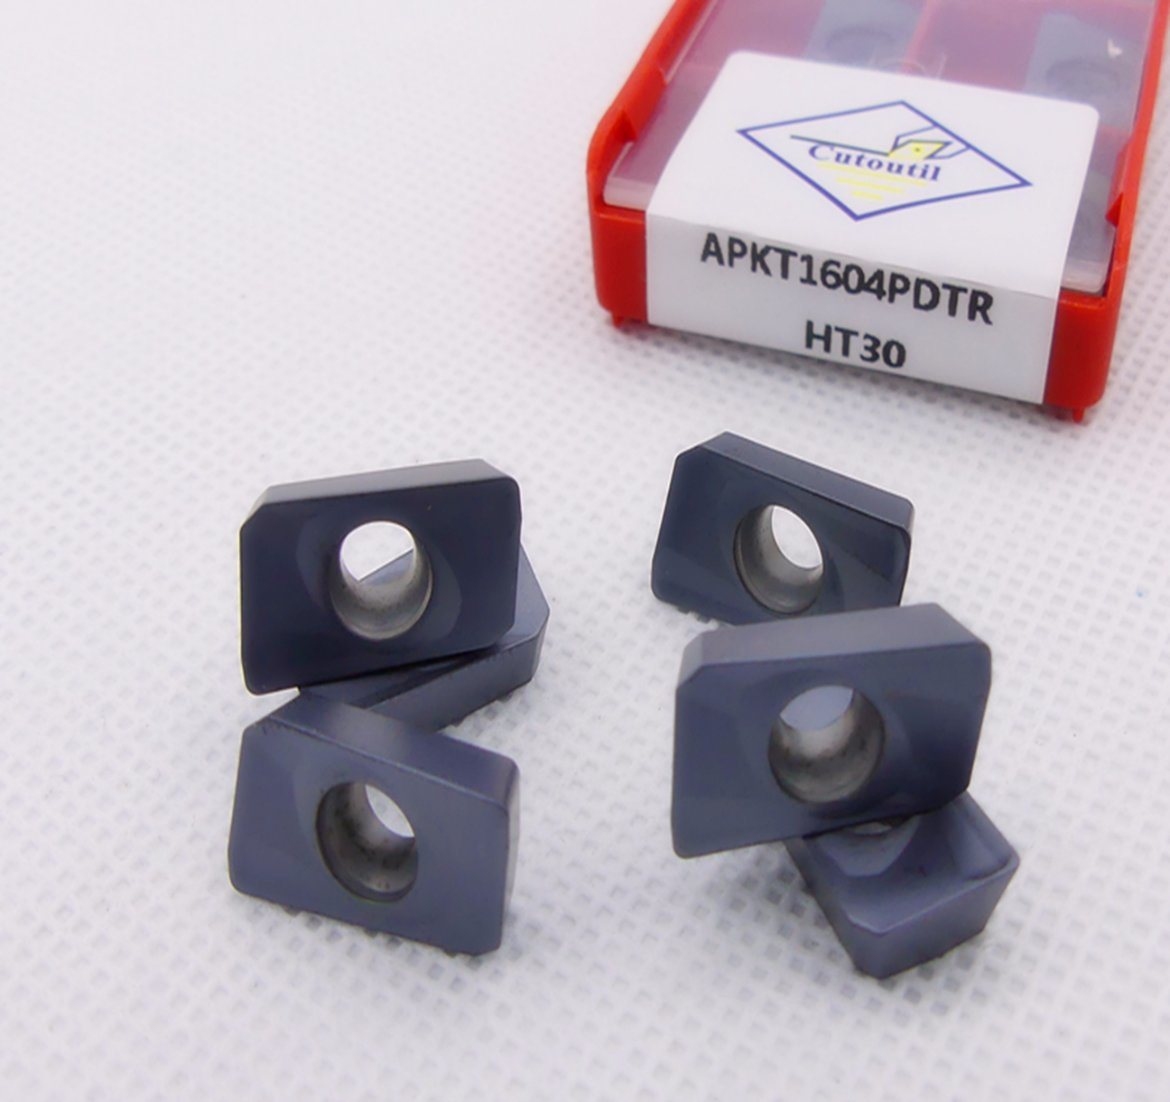 Cutoutil Apkt1604  Ht30 for Steel Alternative for Lamina   Carbide Inserts